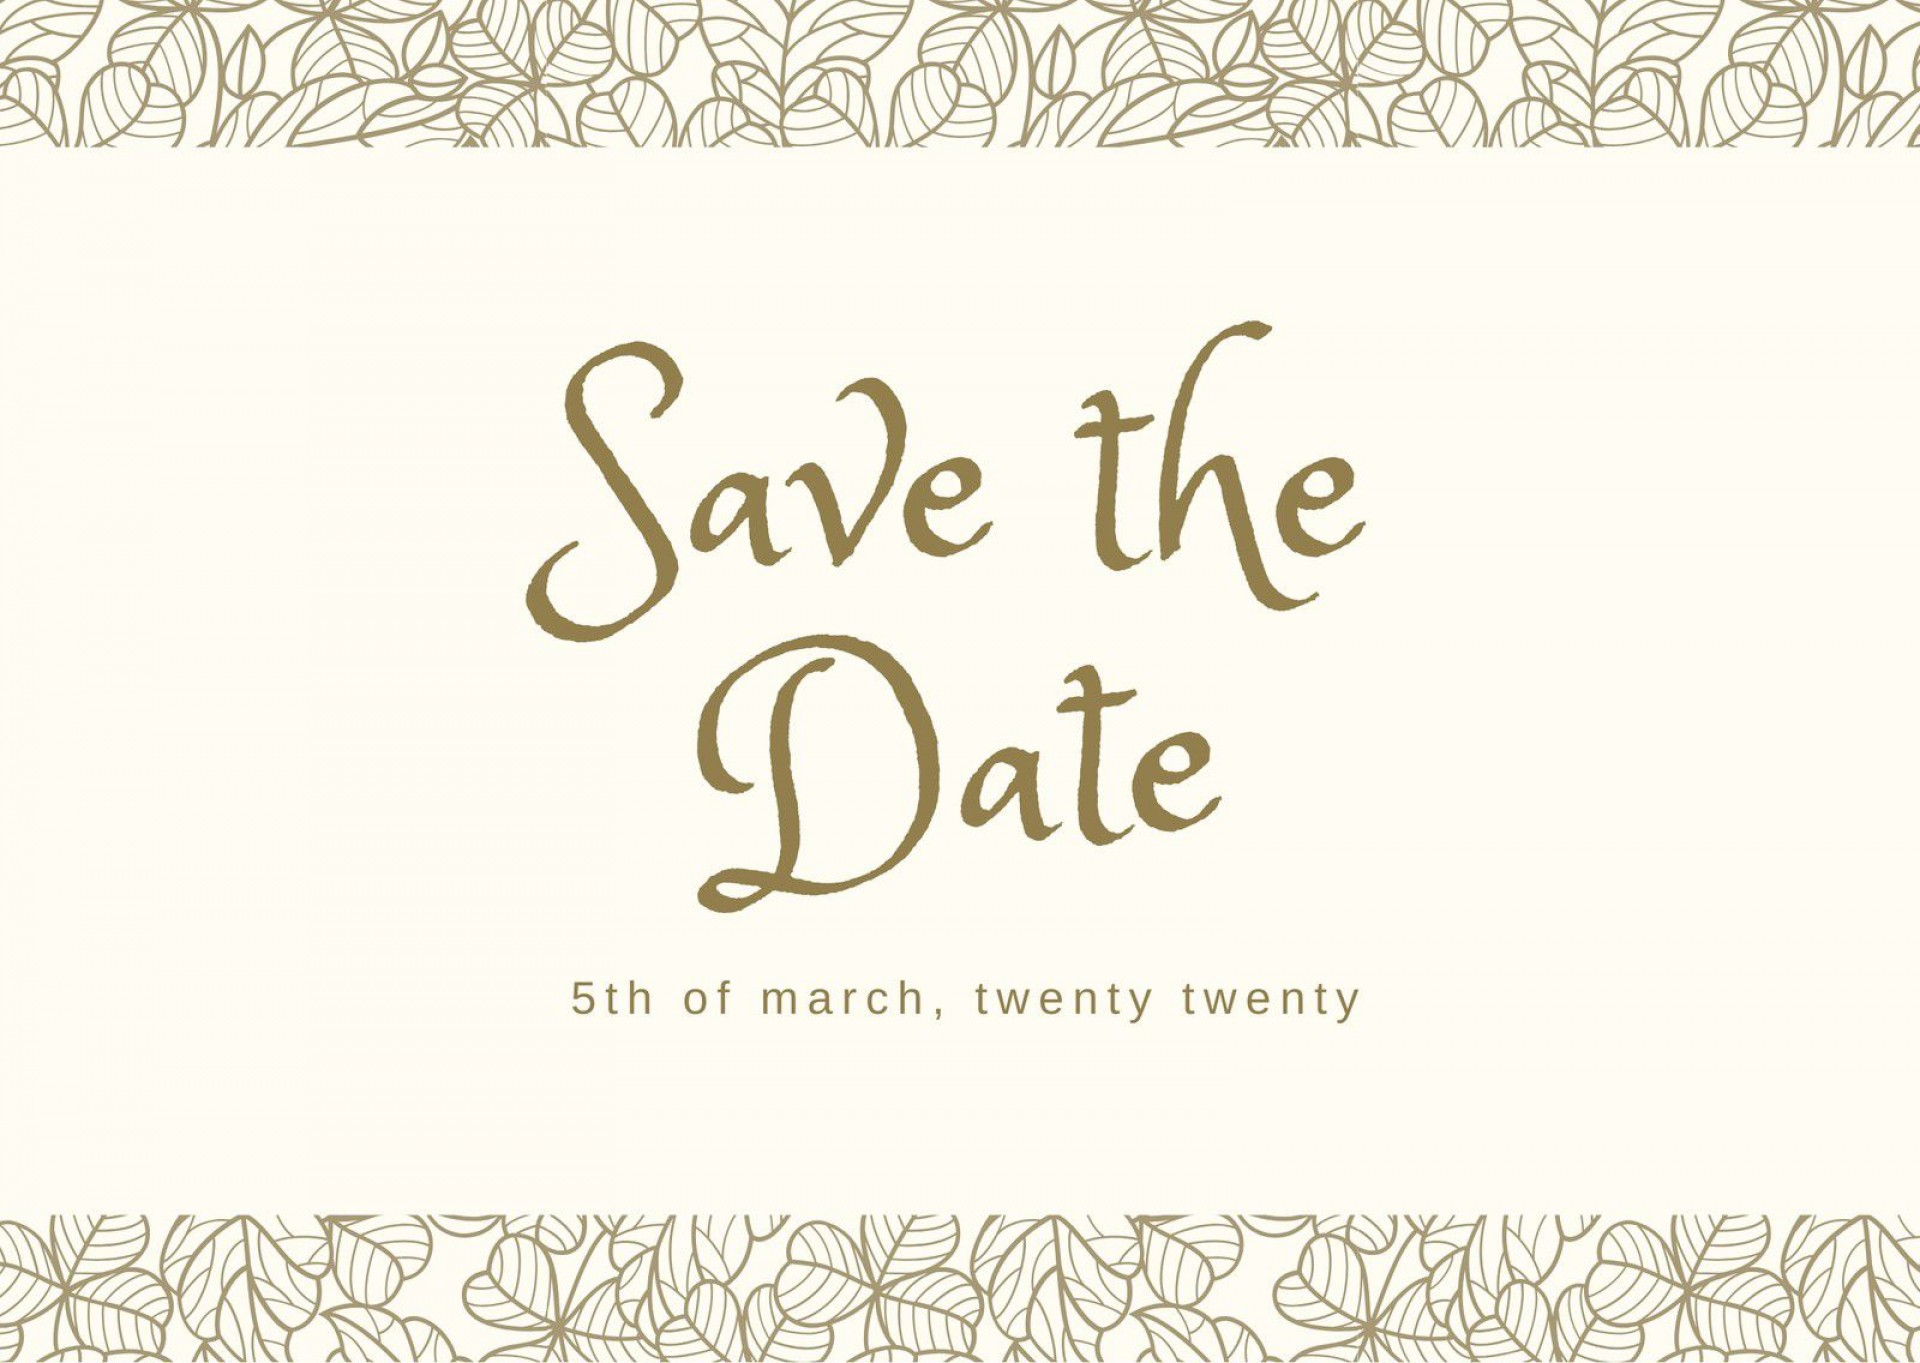 002 Striking Save The Date Postcard Template High Definition  Diy Free Birthday1920